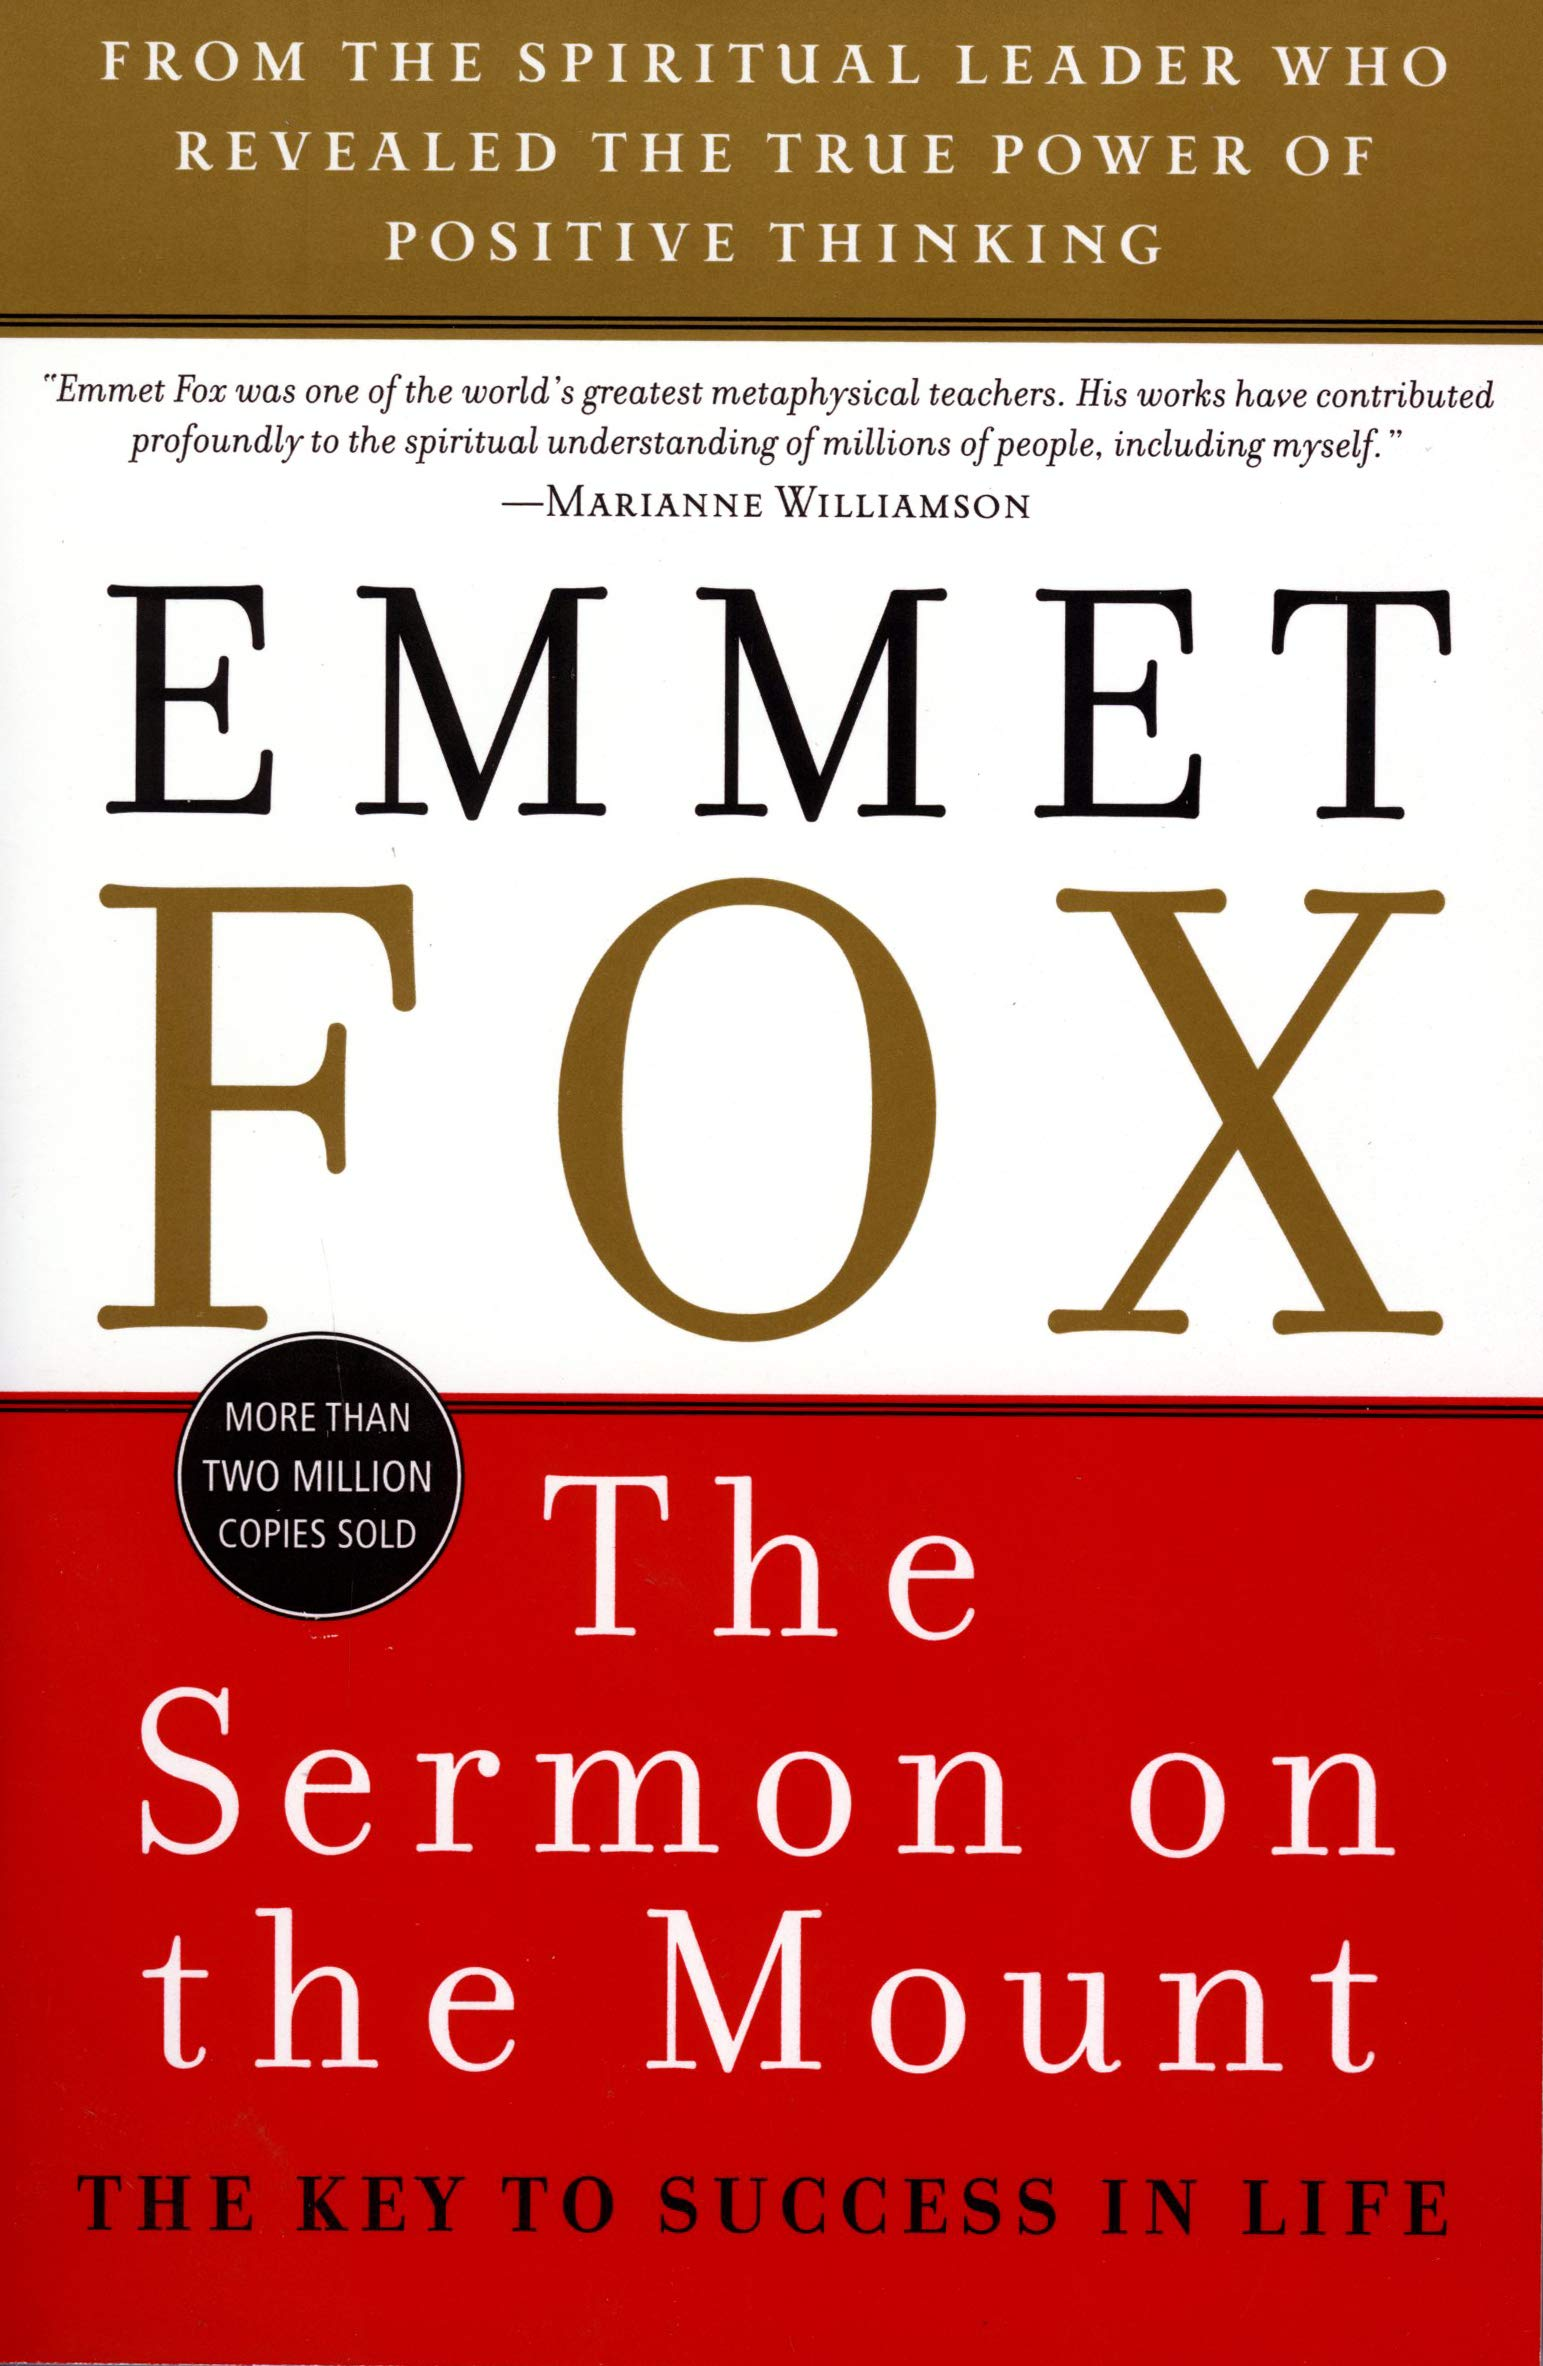 The Sermon On The Mount The Key To Success In Life Fox Emmet 9780060628628 Amazon Com Books